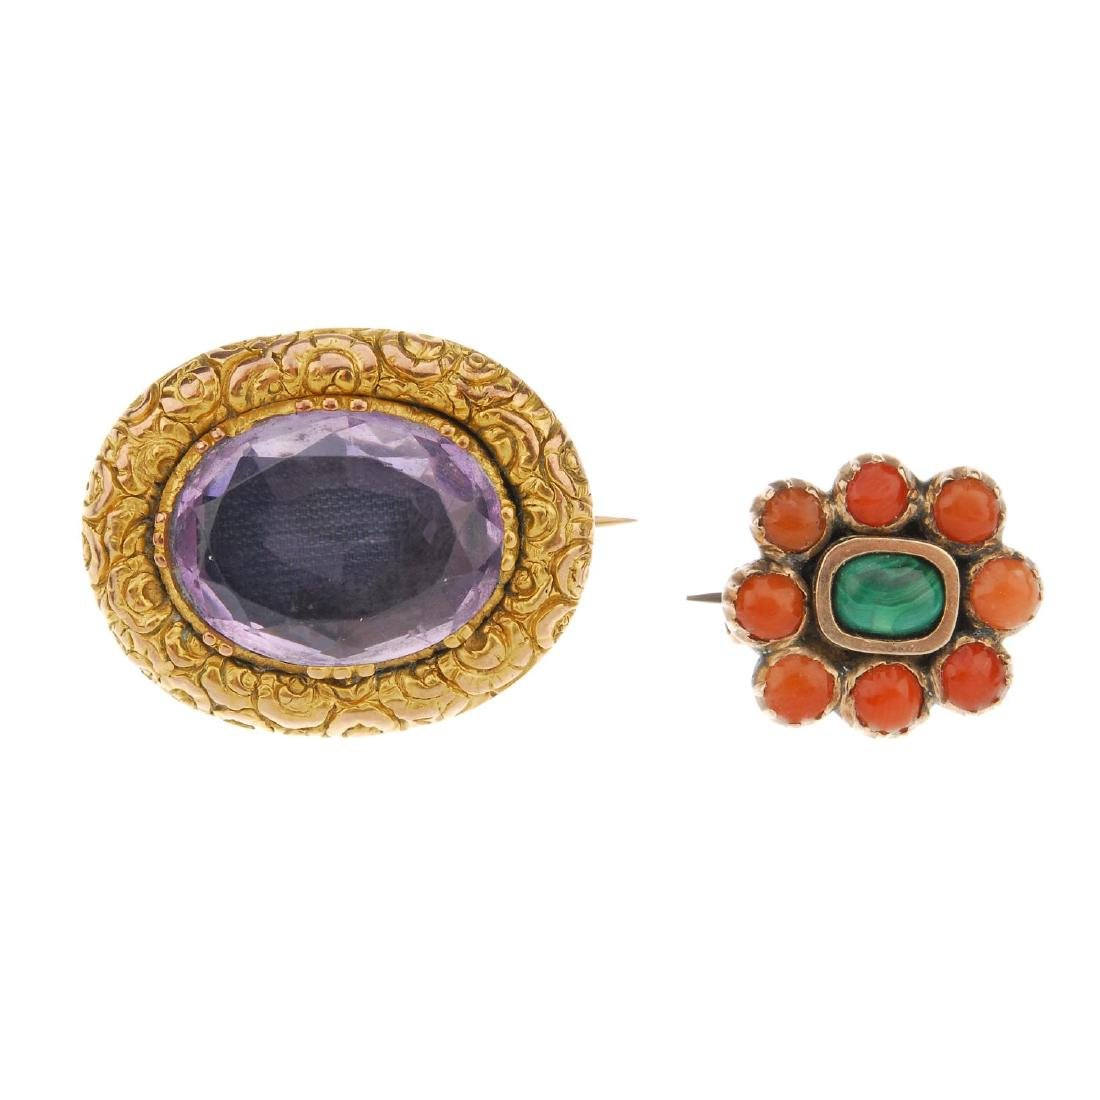 Two late Victorian gem-set brooches. The first an